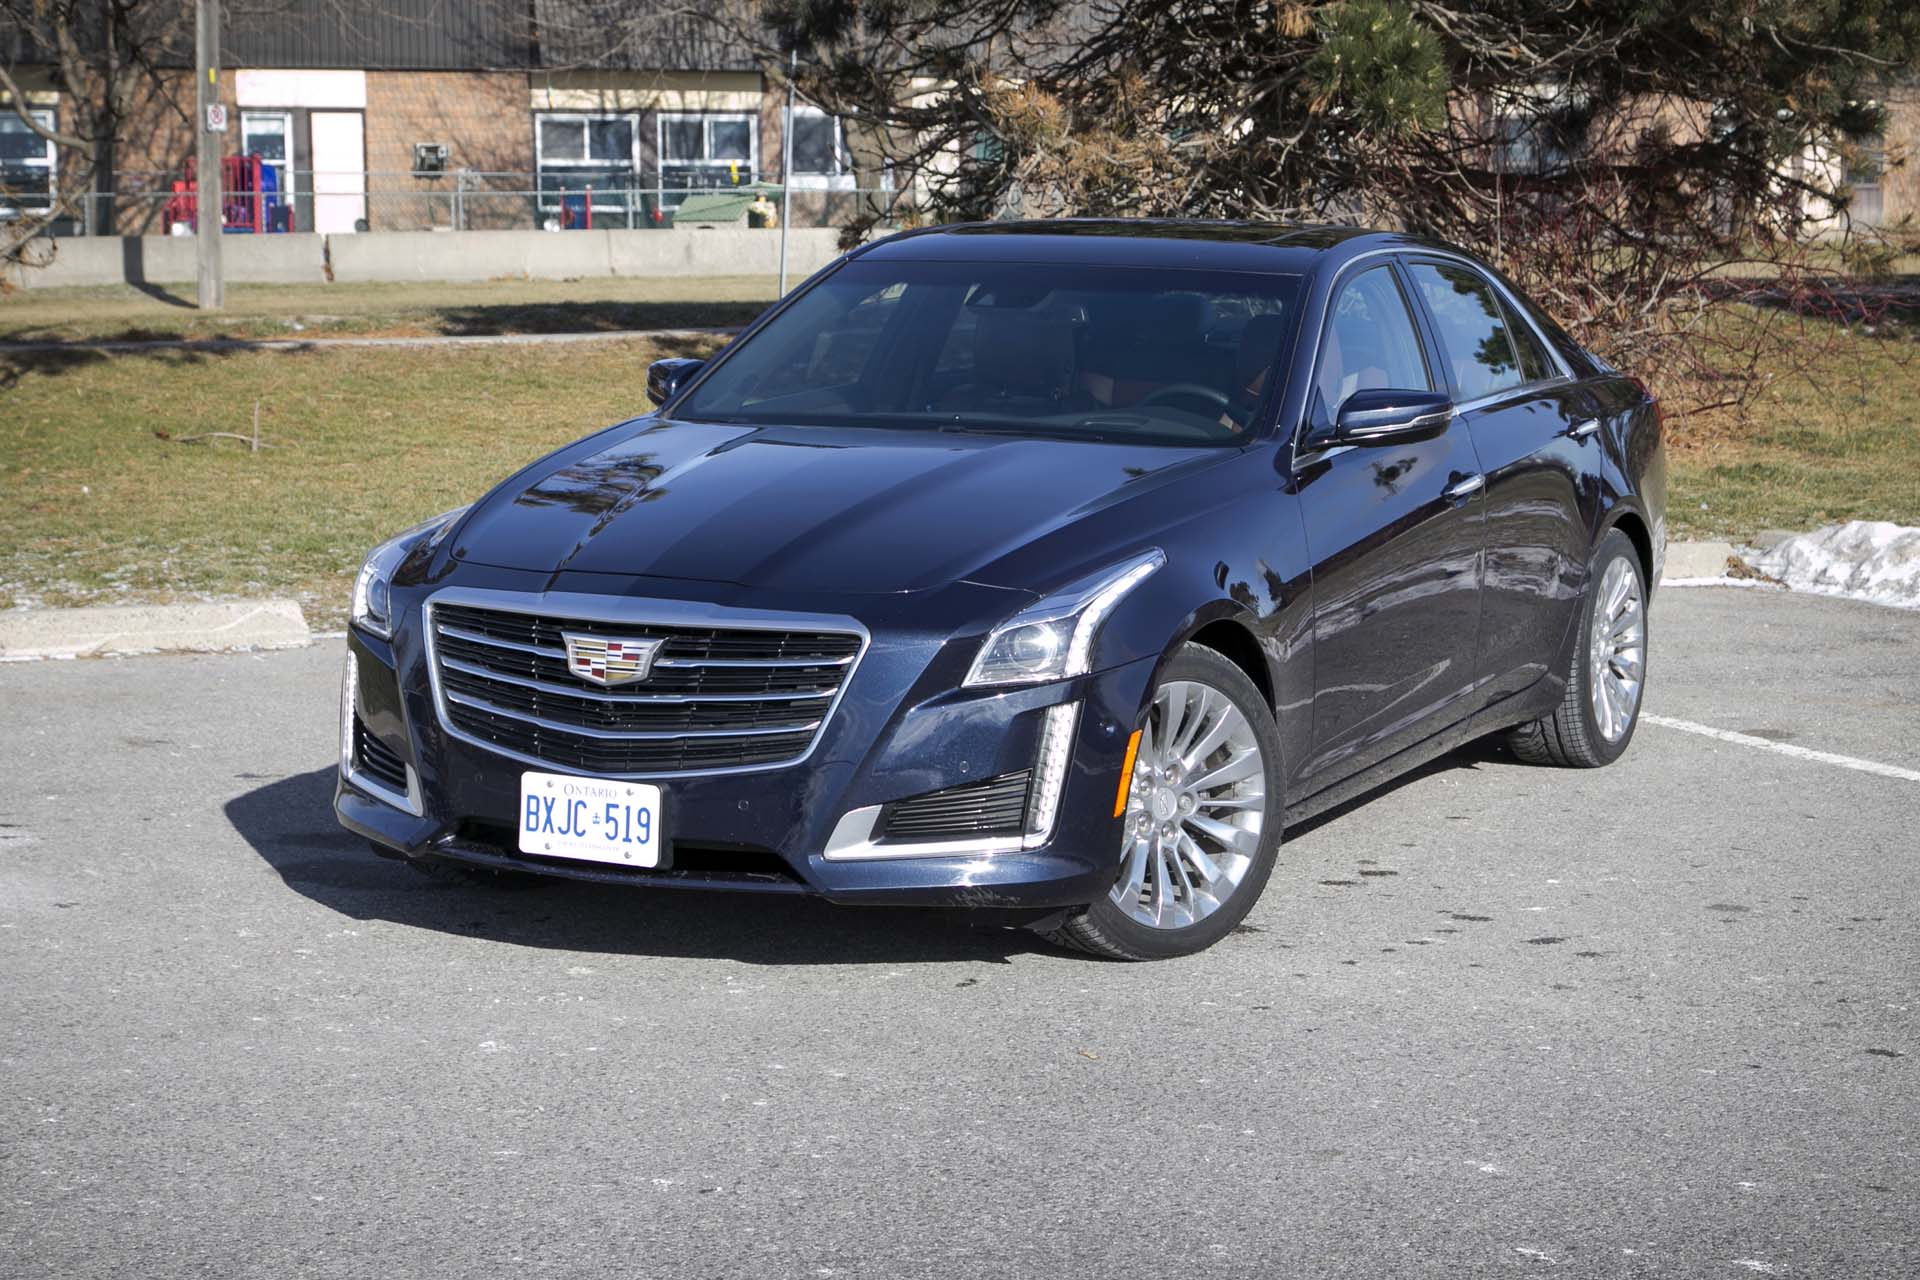 hight resolution of test drive 2016 cadillac cts 3 6 awd autos ca rh autos ca cadillac cts parts diagram 2004 cadillac cts engine diagram